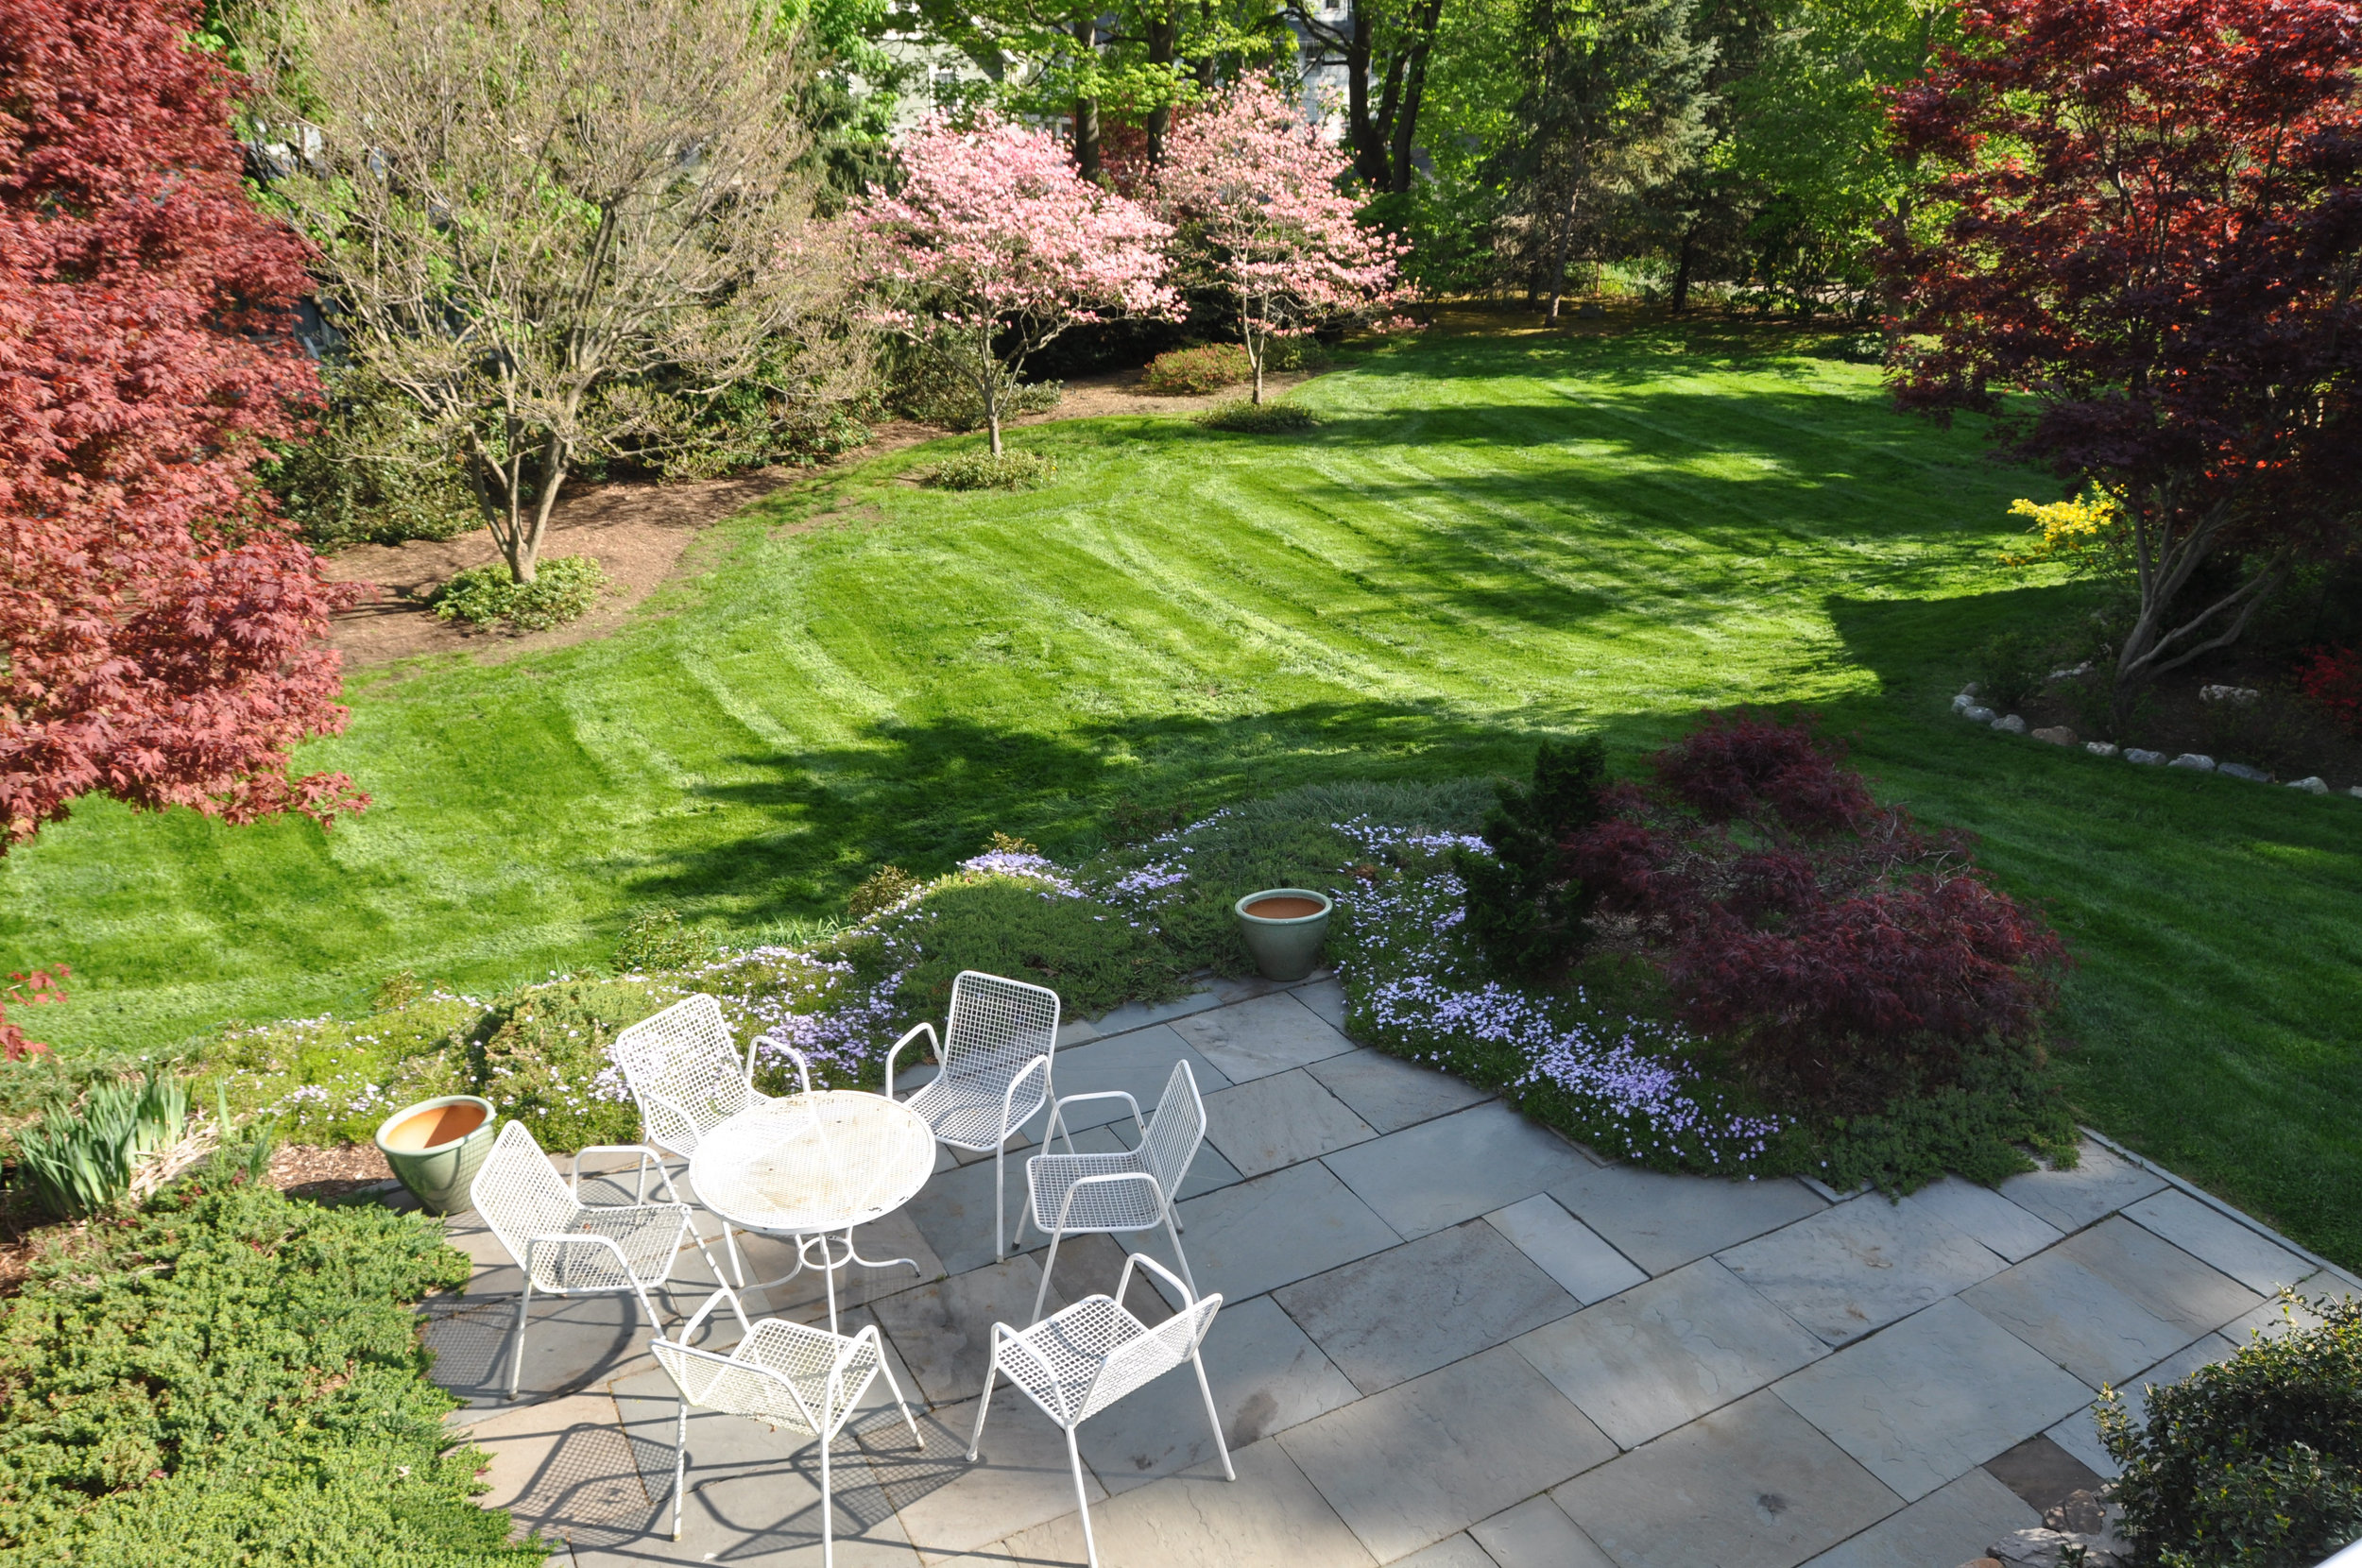 Patio and lower yard from verandah with blooming border flowers.jpg